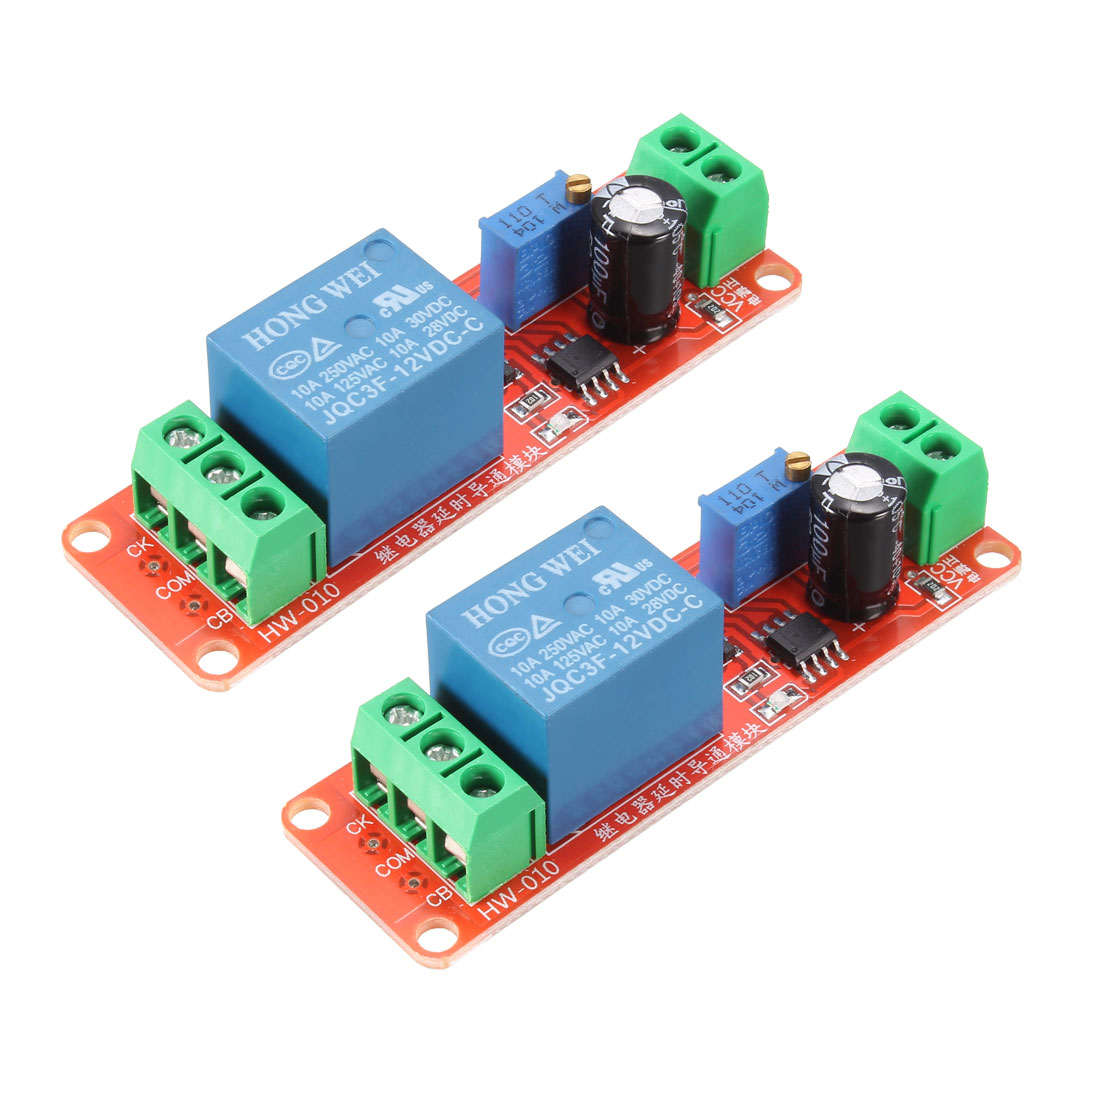 DC12V NE555 Module Delay Timer Switch Adjustable Module for 0-10s 2pcs